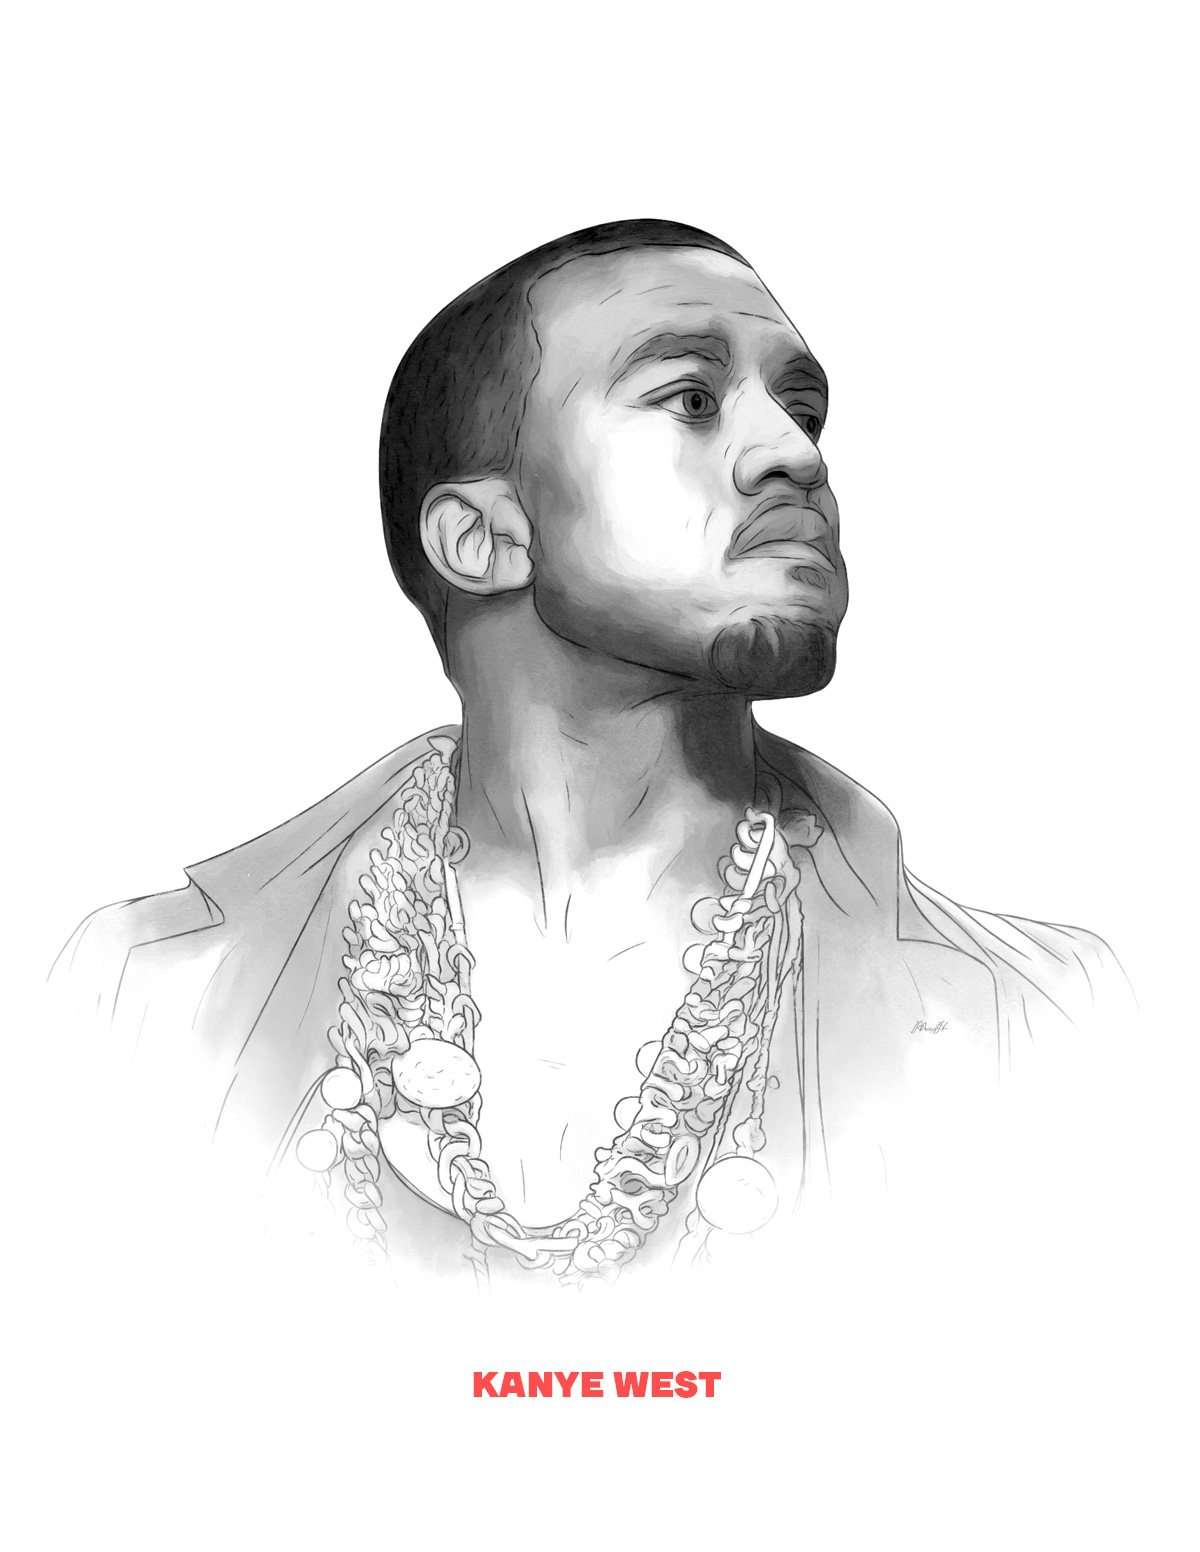 Kanye West portrait from People of 2016 series, by Max Hancock